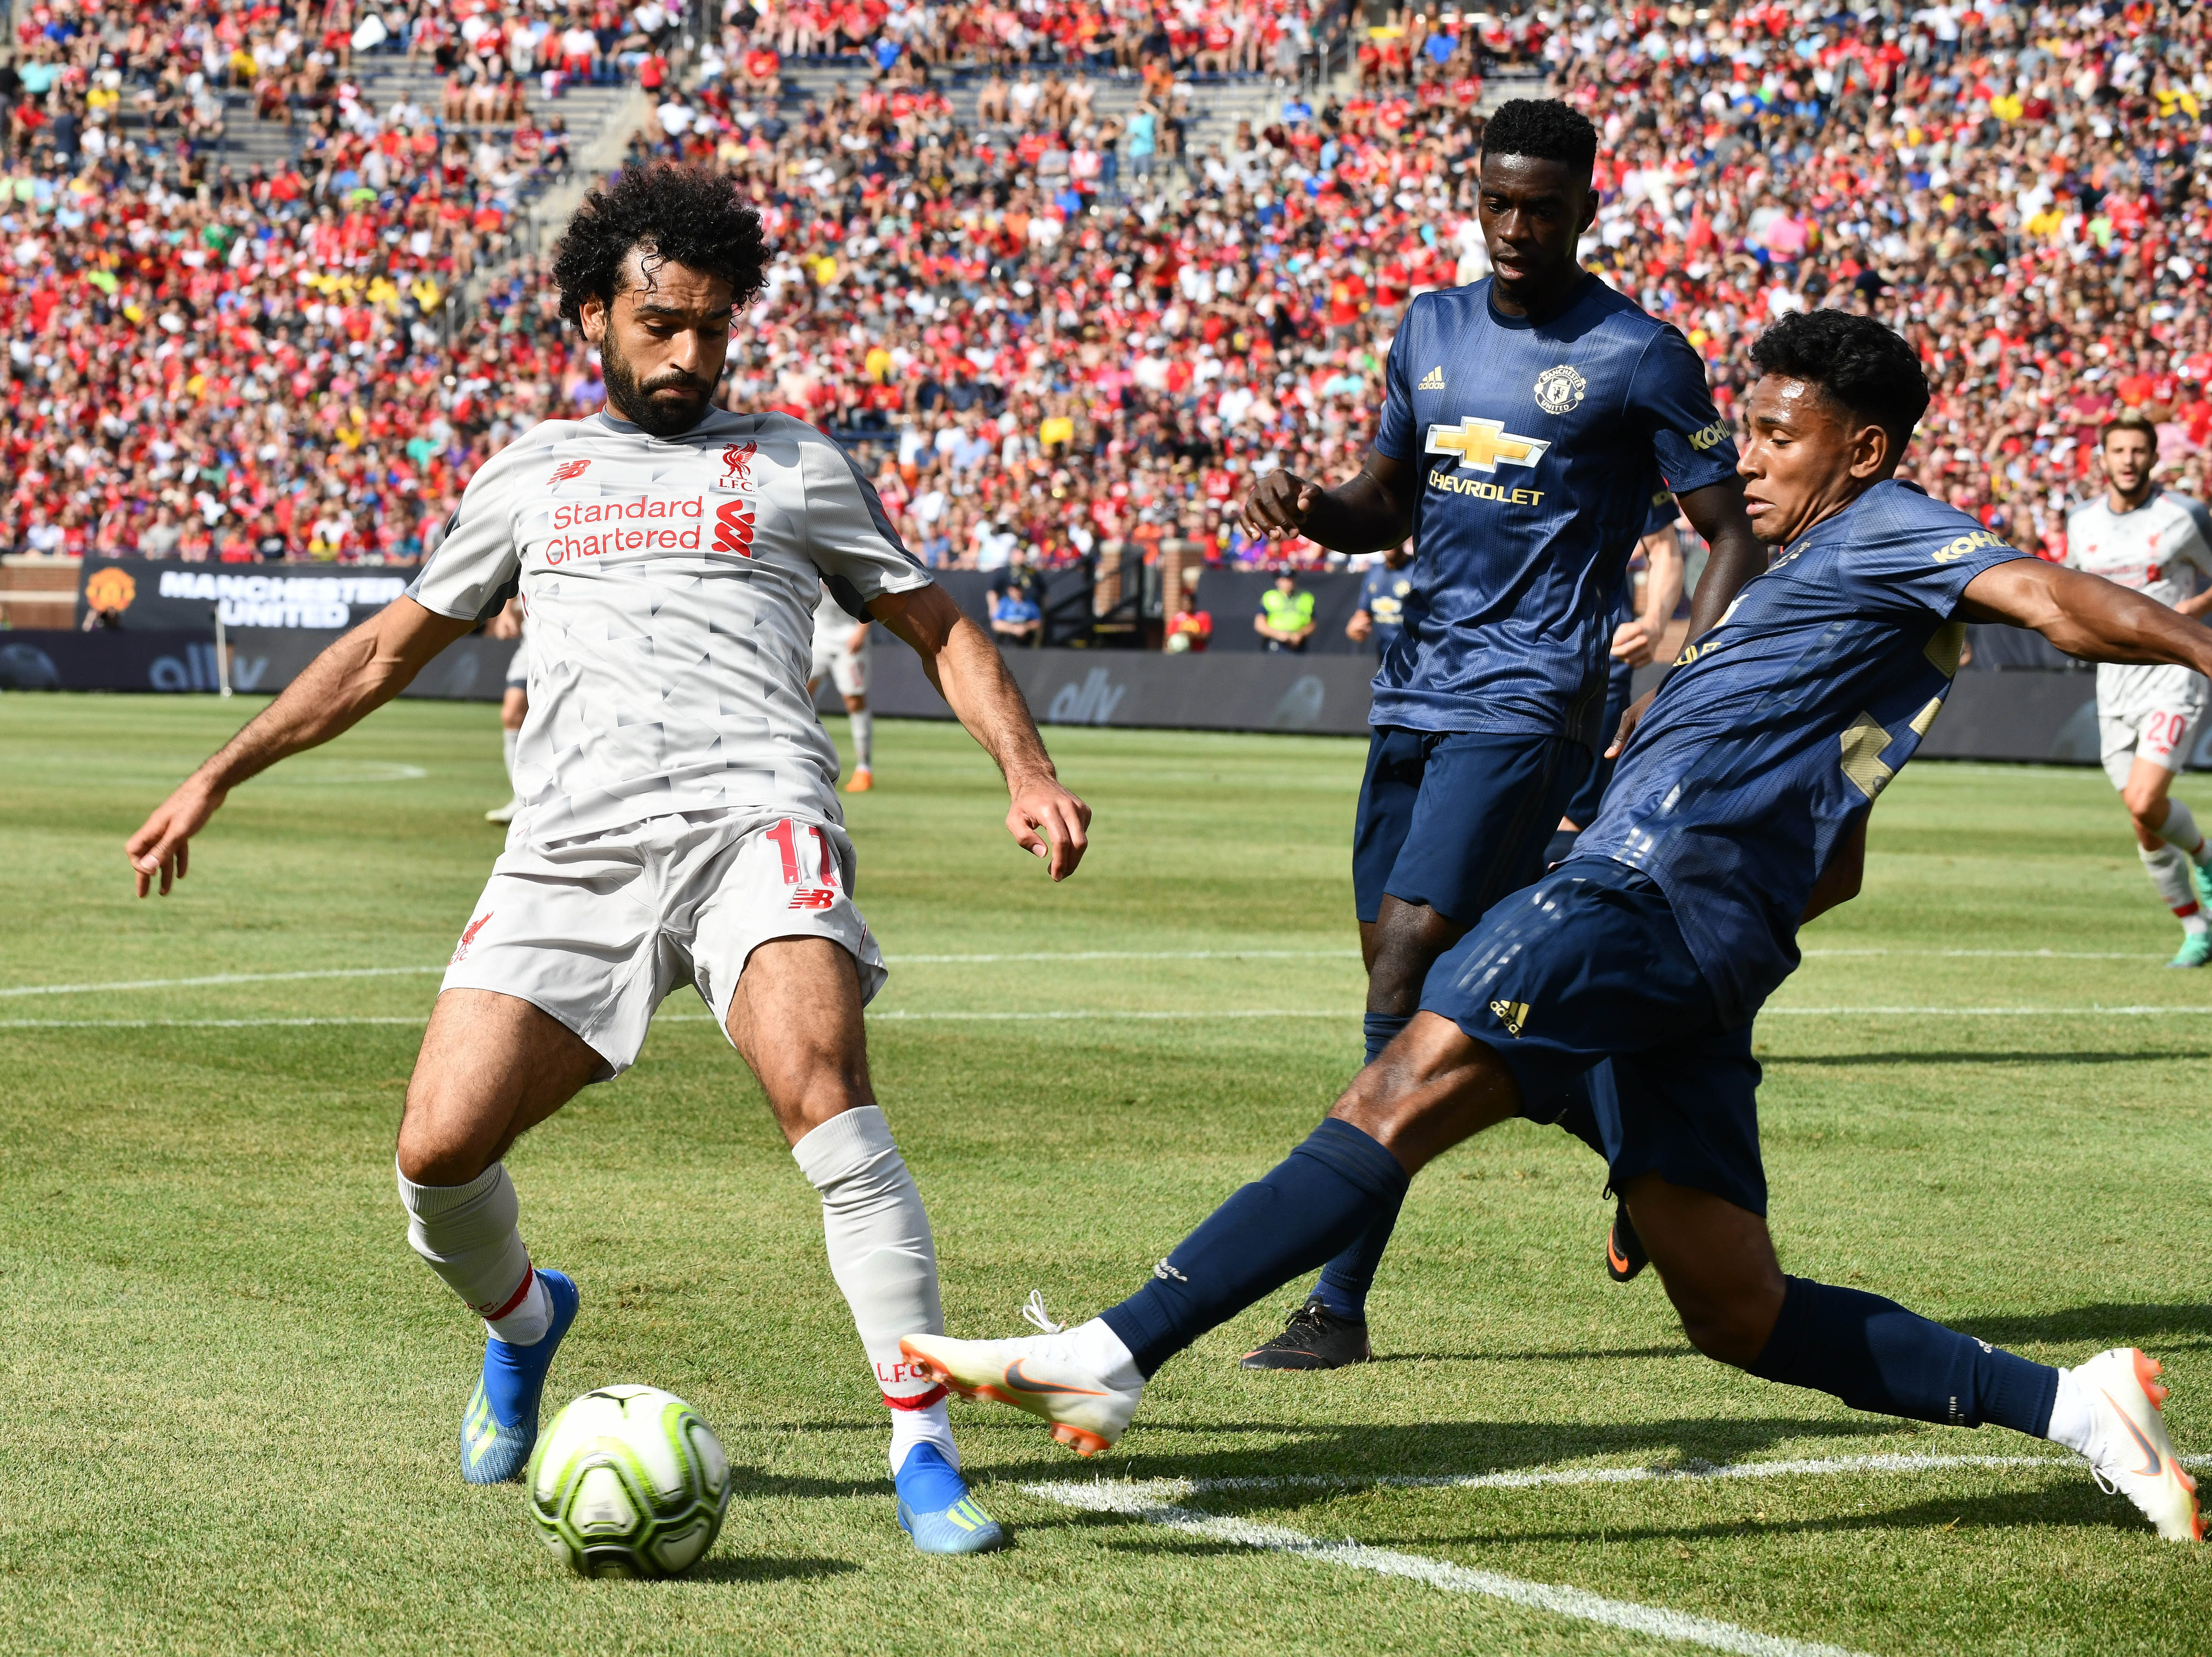 Liverpool's Mohamed Slah Chas down a loose ball in front of Manchesters net with Demetri Mitchell defending in the first half.